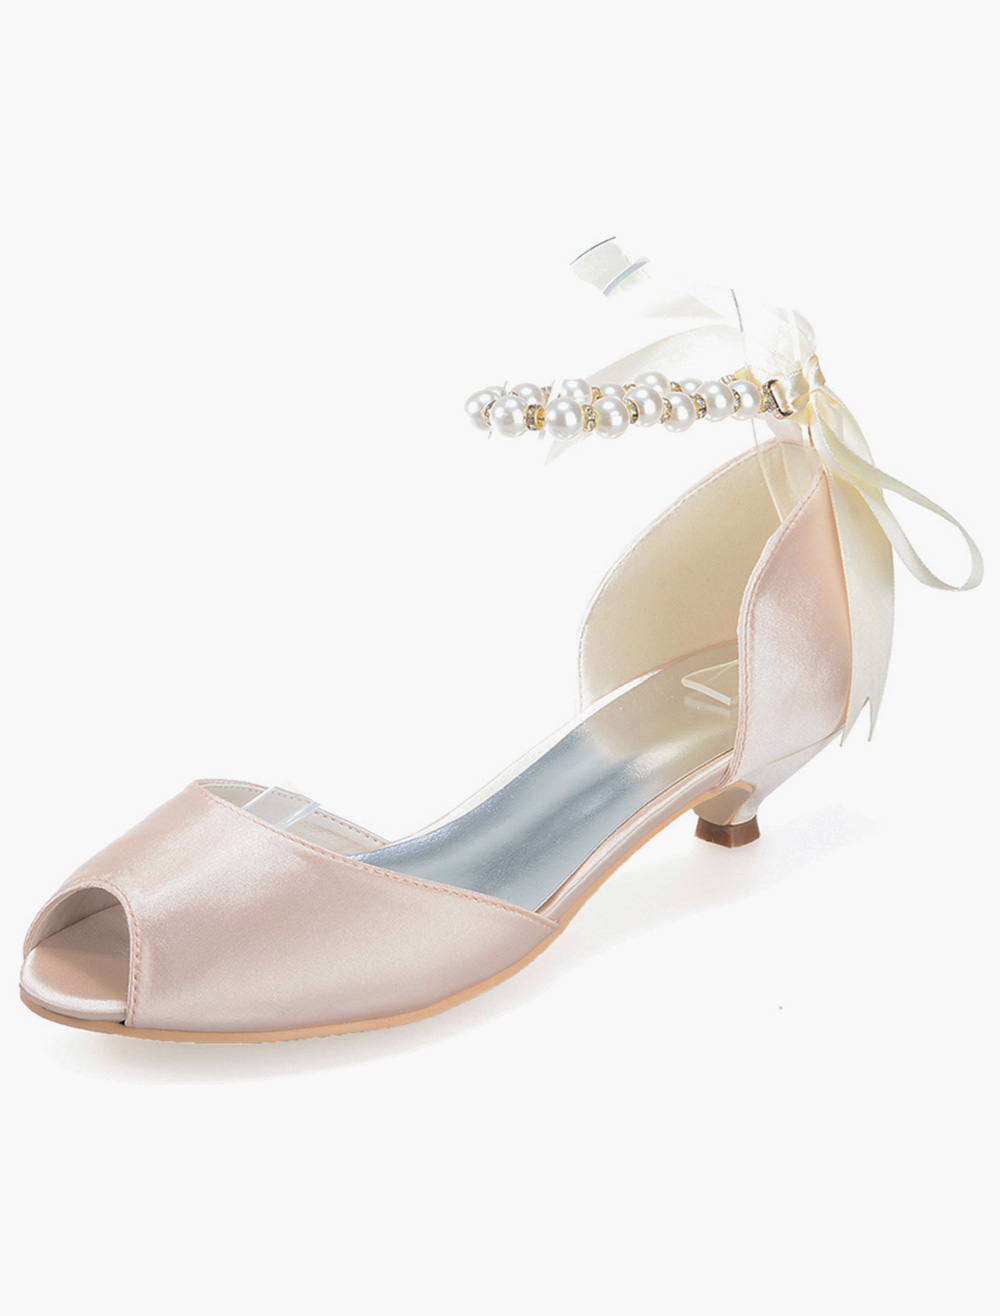 Goblet Heel Ribbons Satin Romantic Dress Sandals